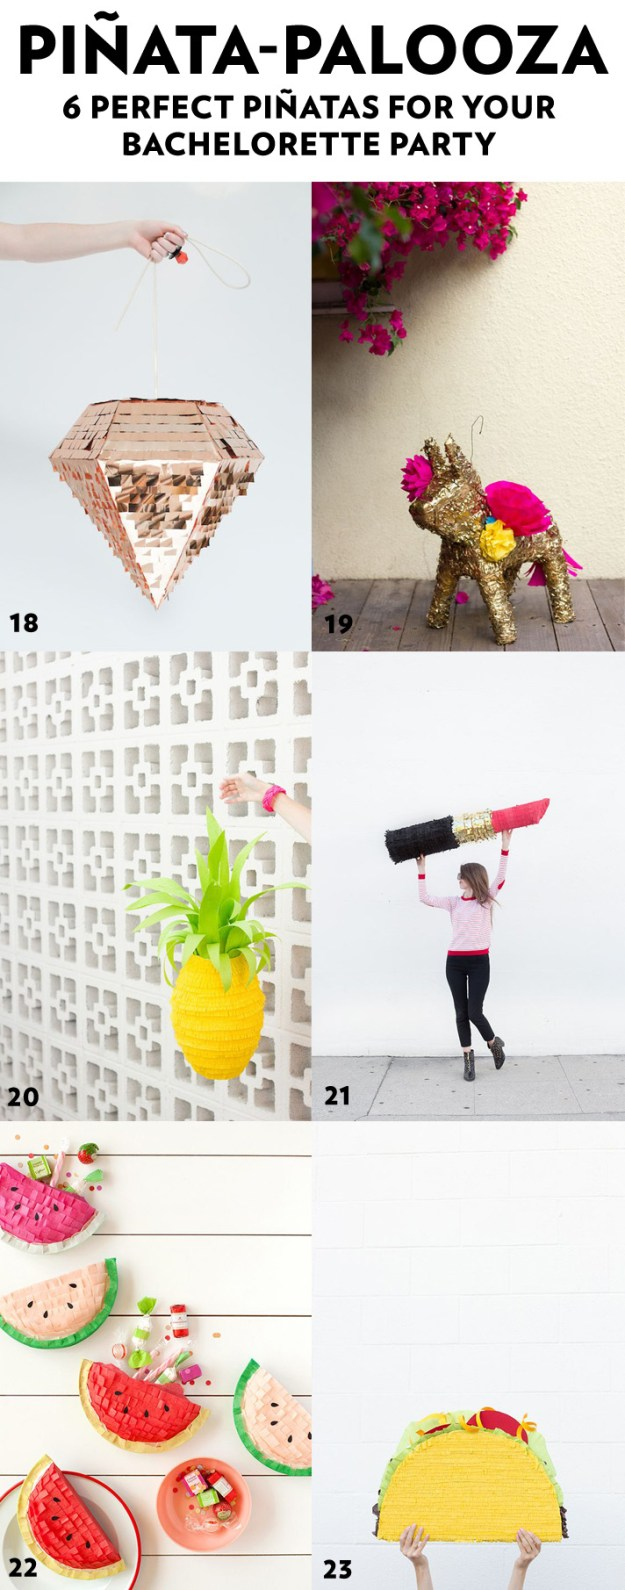 6 Perfect Pinatas for your Bachelorette Party + 44 More Simple and Stylish DIY Bridal Shower & Bachelorette Decoration Ideas from Ultimate Bridesmaid